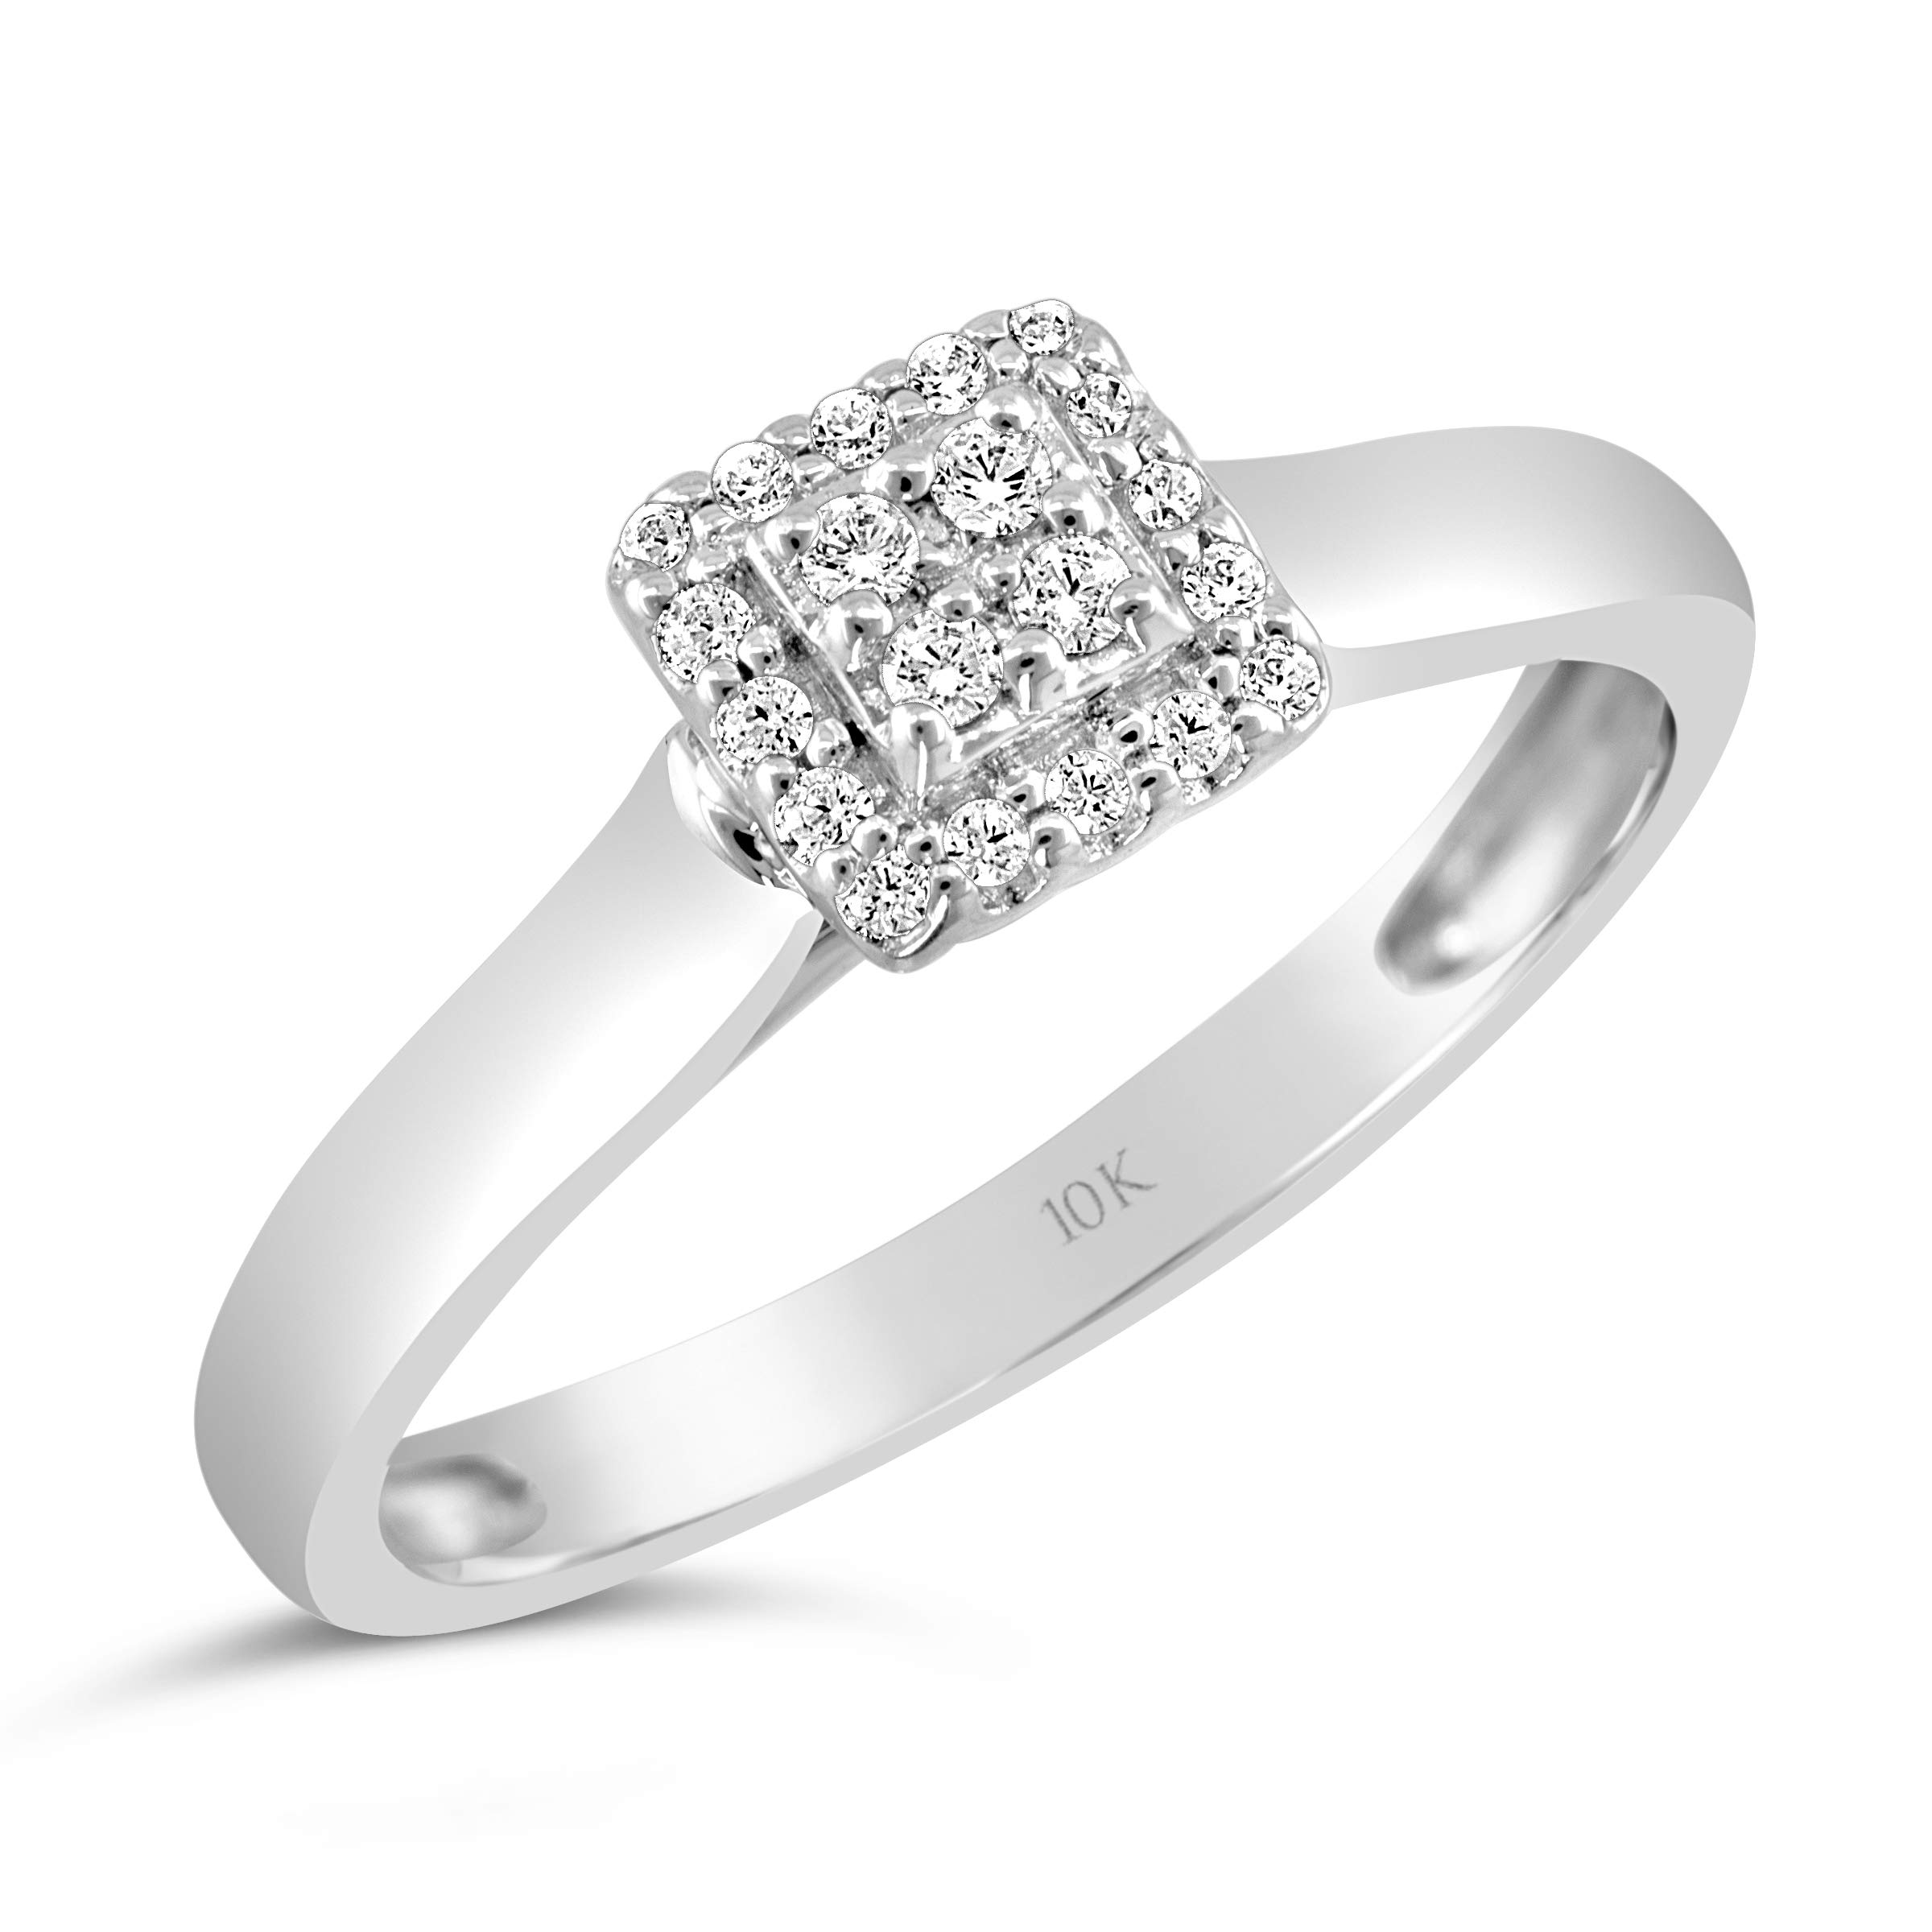 Brilliant Expressions 10K White Gold 1/8 Cttw Conflict Free Diamond Square Halo Cluster Engagement Ring (I-J Color, I2-I3 Clarity), Size 8